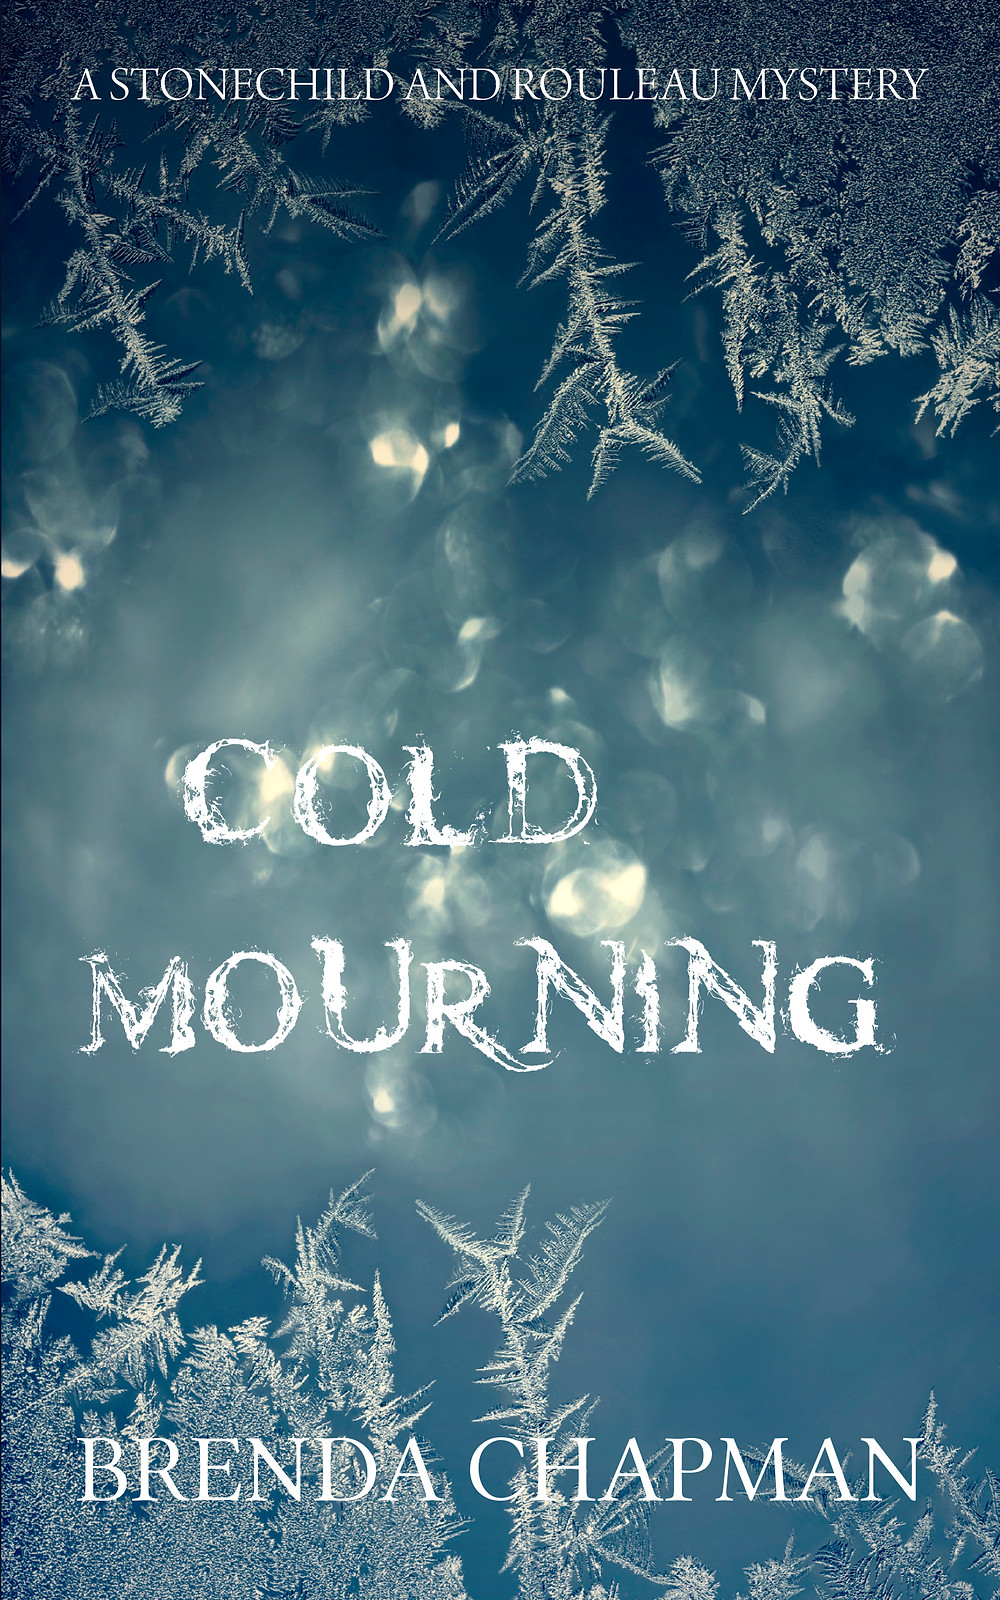 Brenda Chapman Cold Mourning Ottawa Review of Books